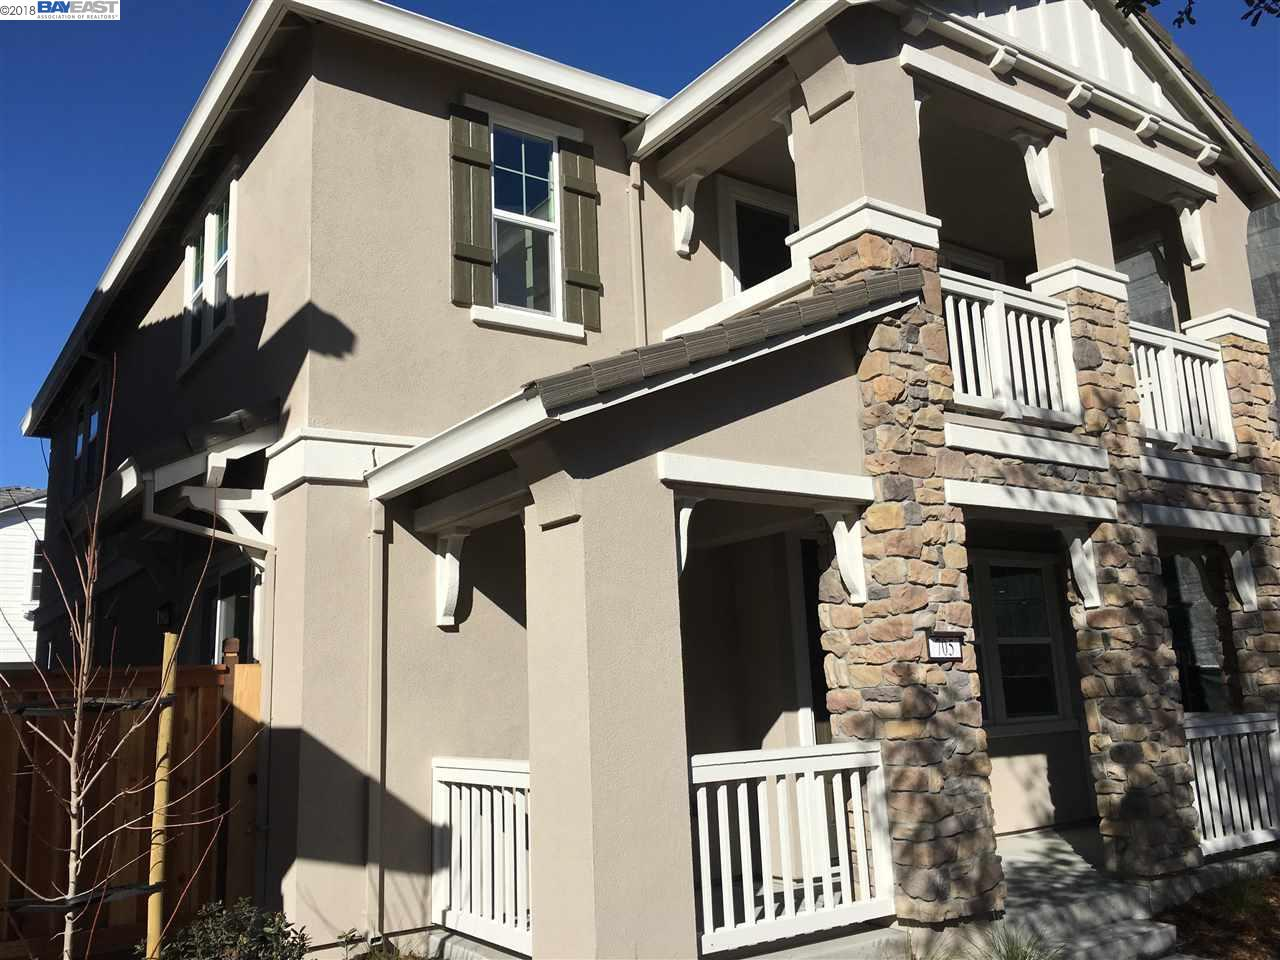 Single Family Home for Rent at 705 Chives 705 Chives Walnut Creek, California 94596 United States